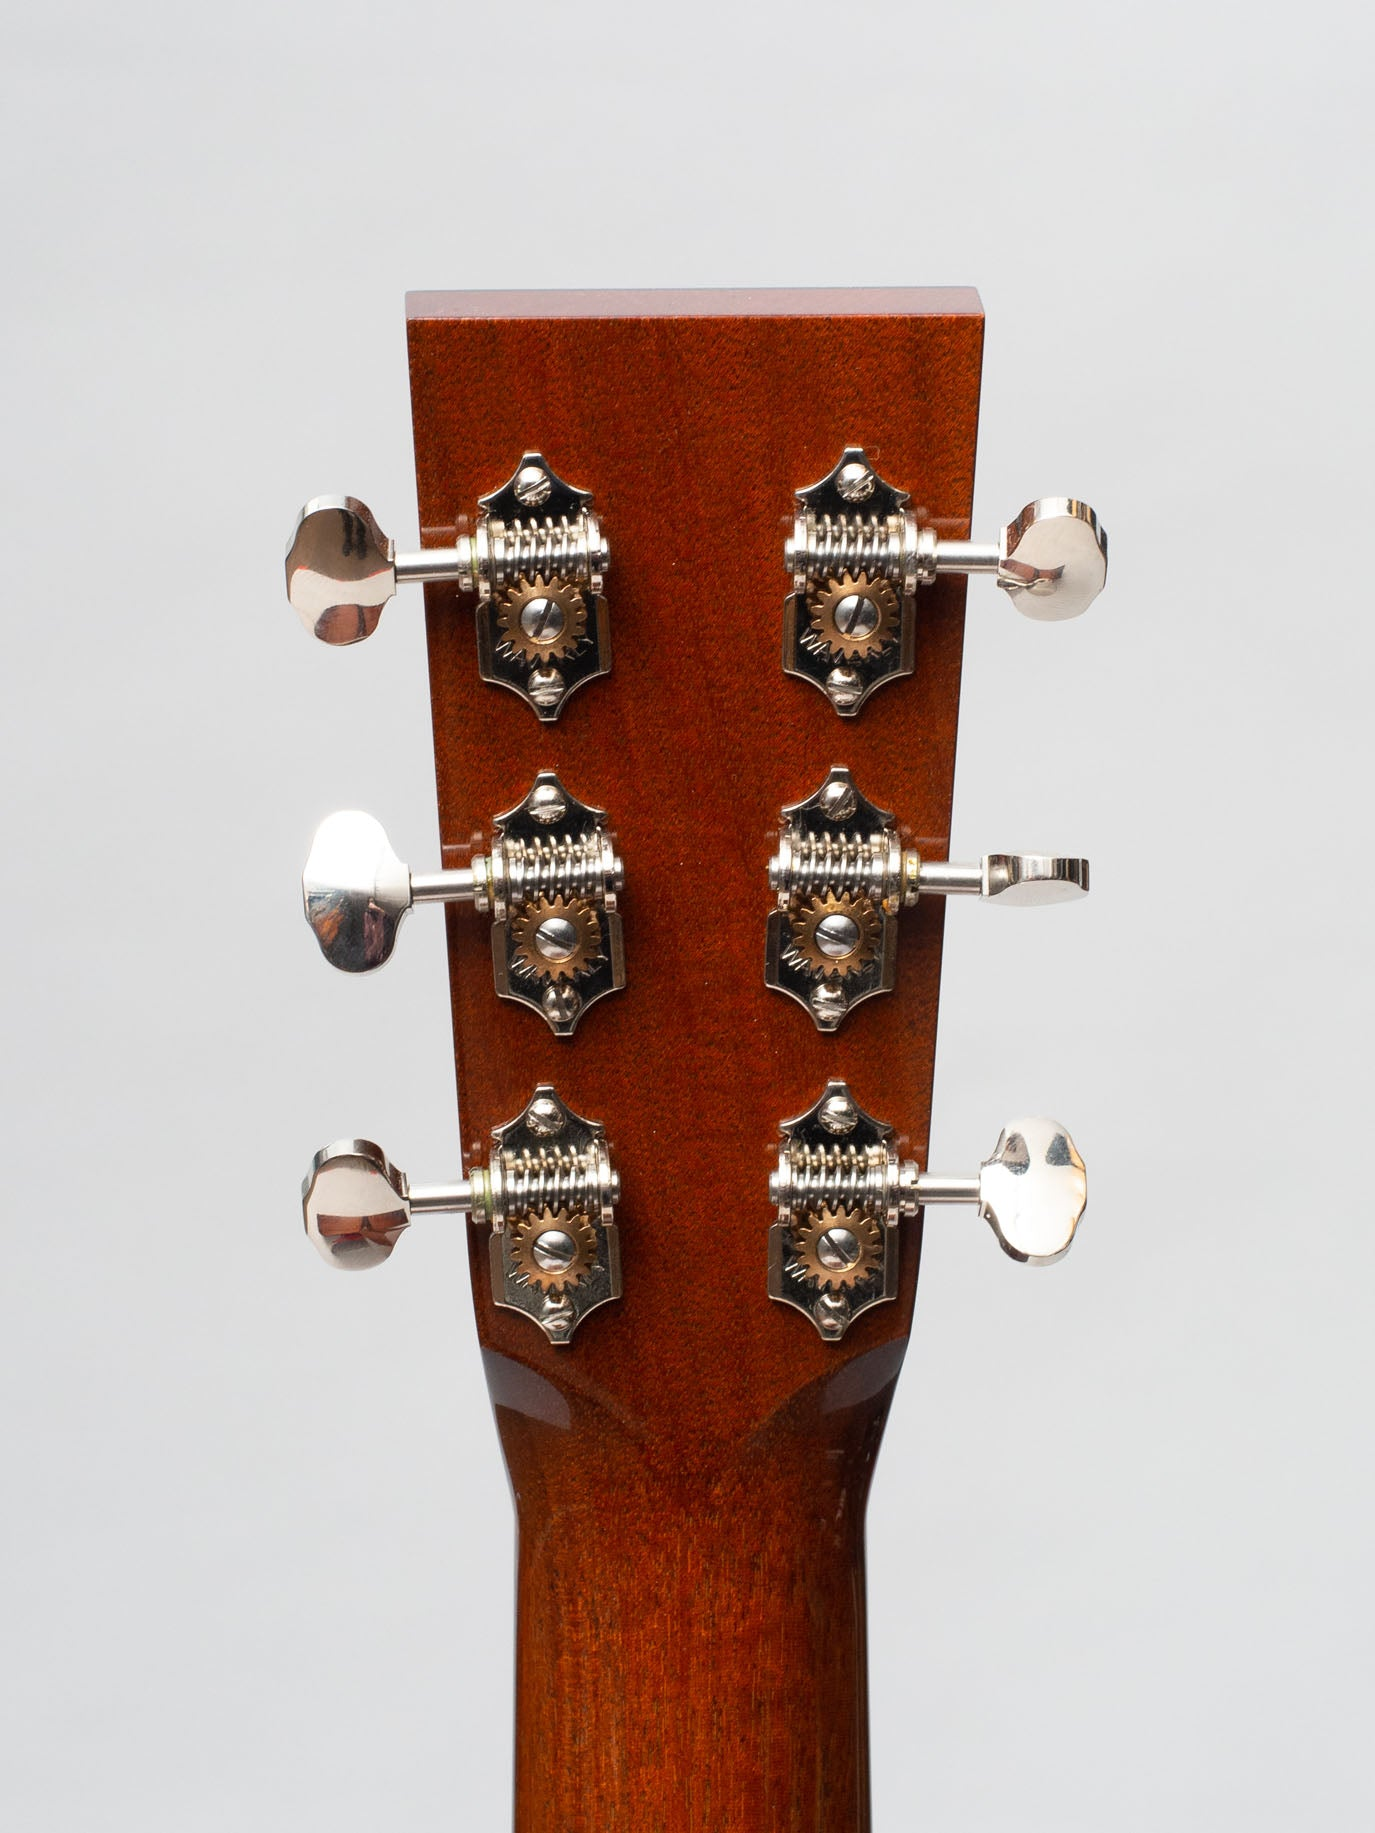 2019 Collings D1AT SN 30138